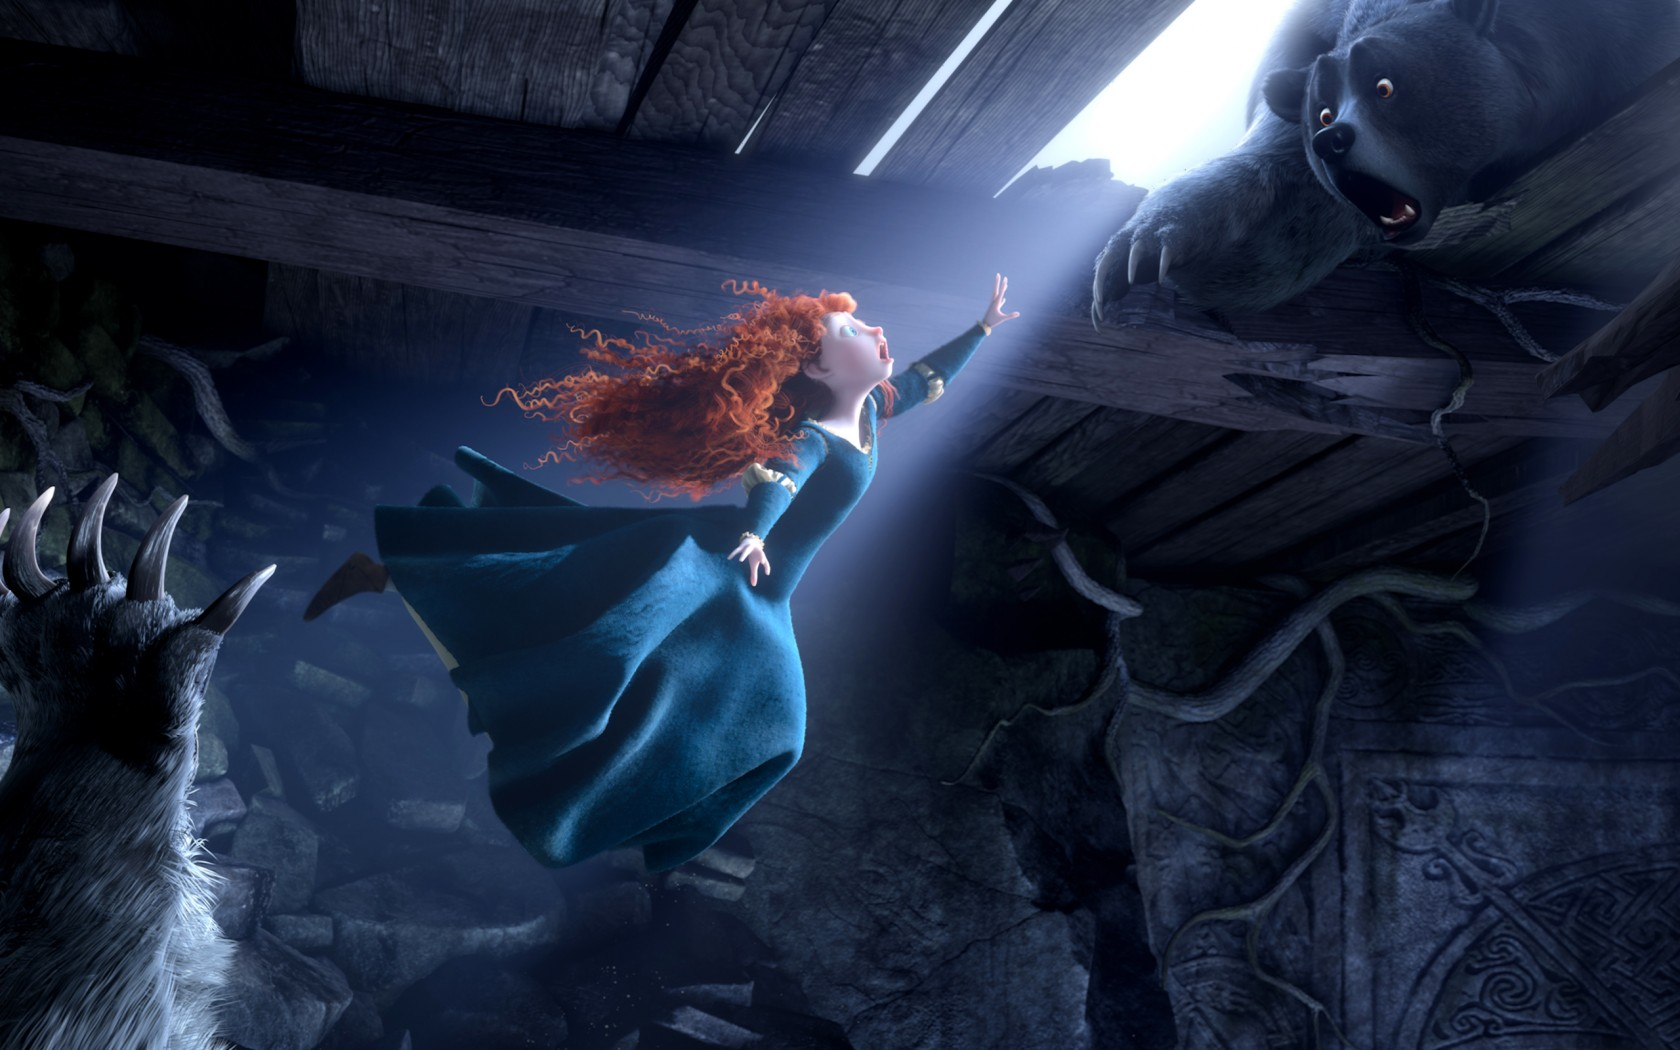 Top 10 3d Wallpapers For Android Princess Merida Brave Movie Wallpapers Hd Wallpapers